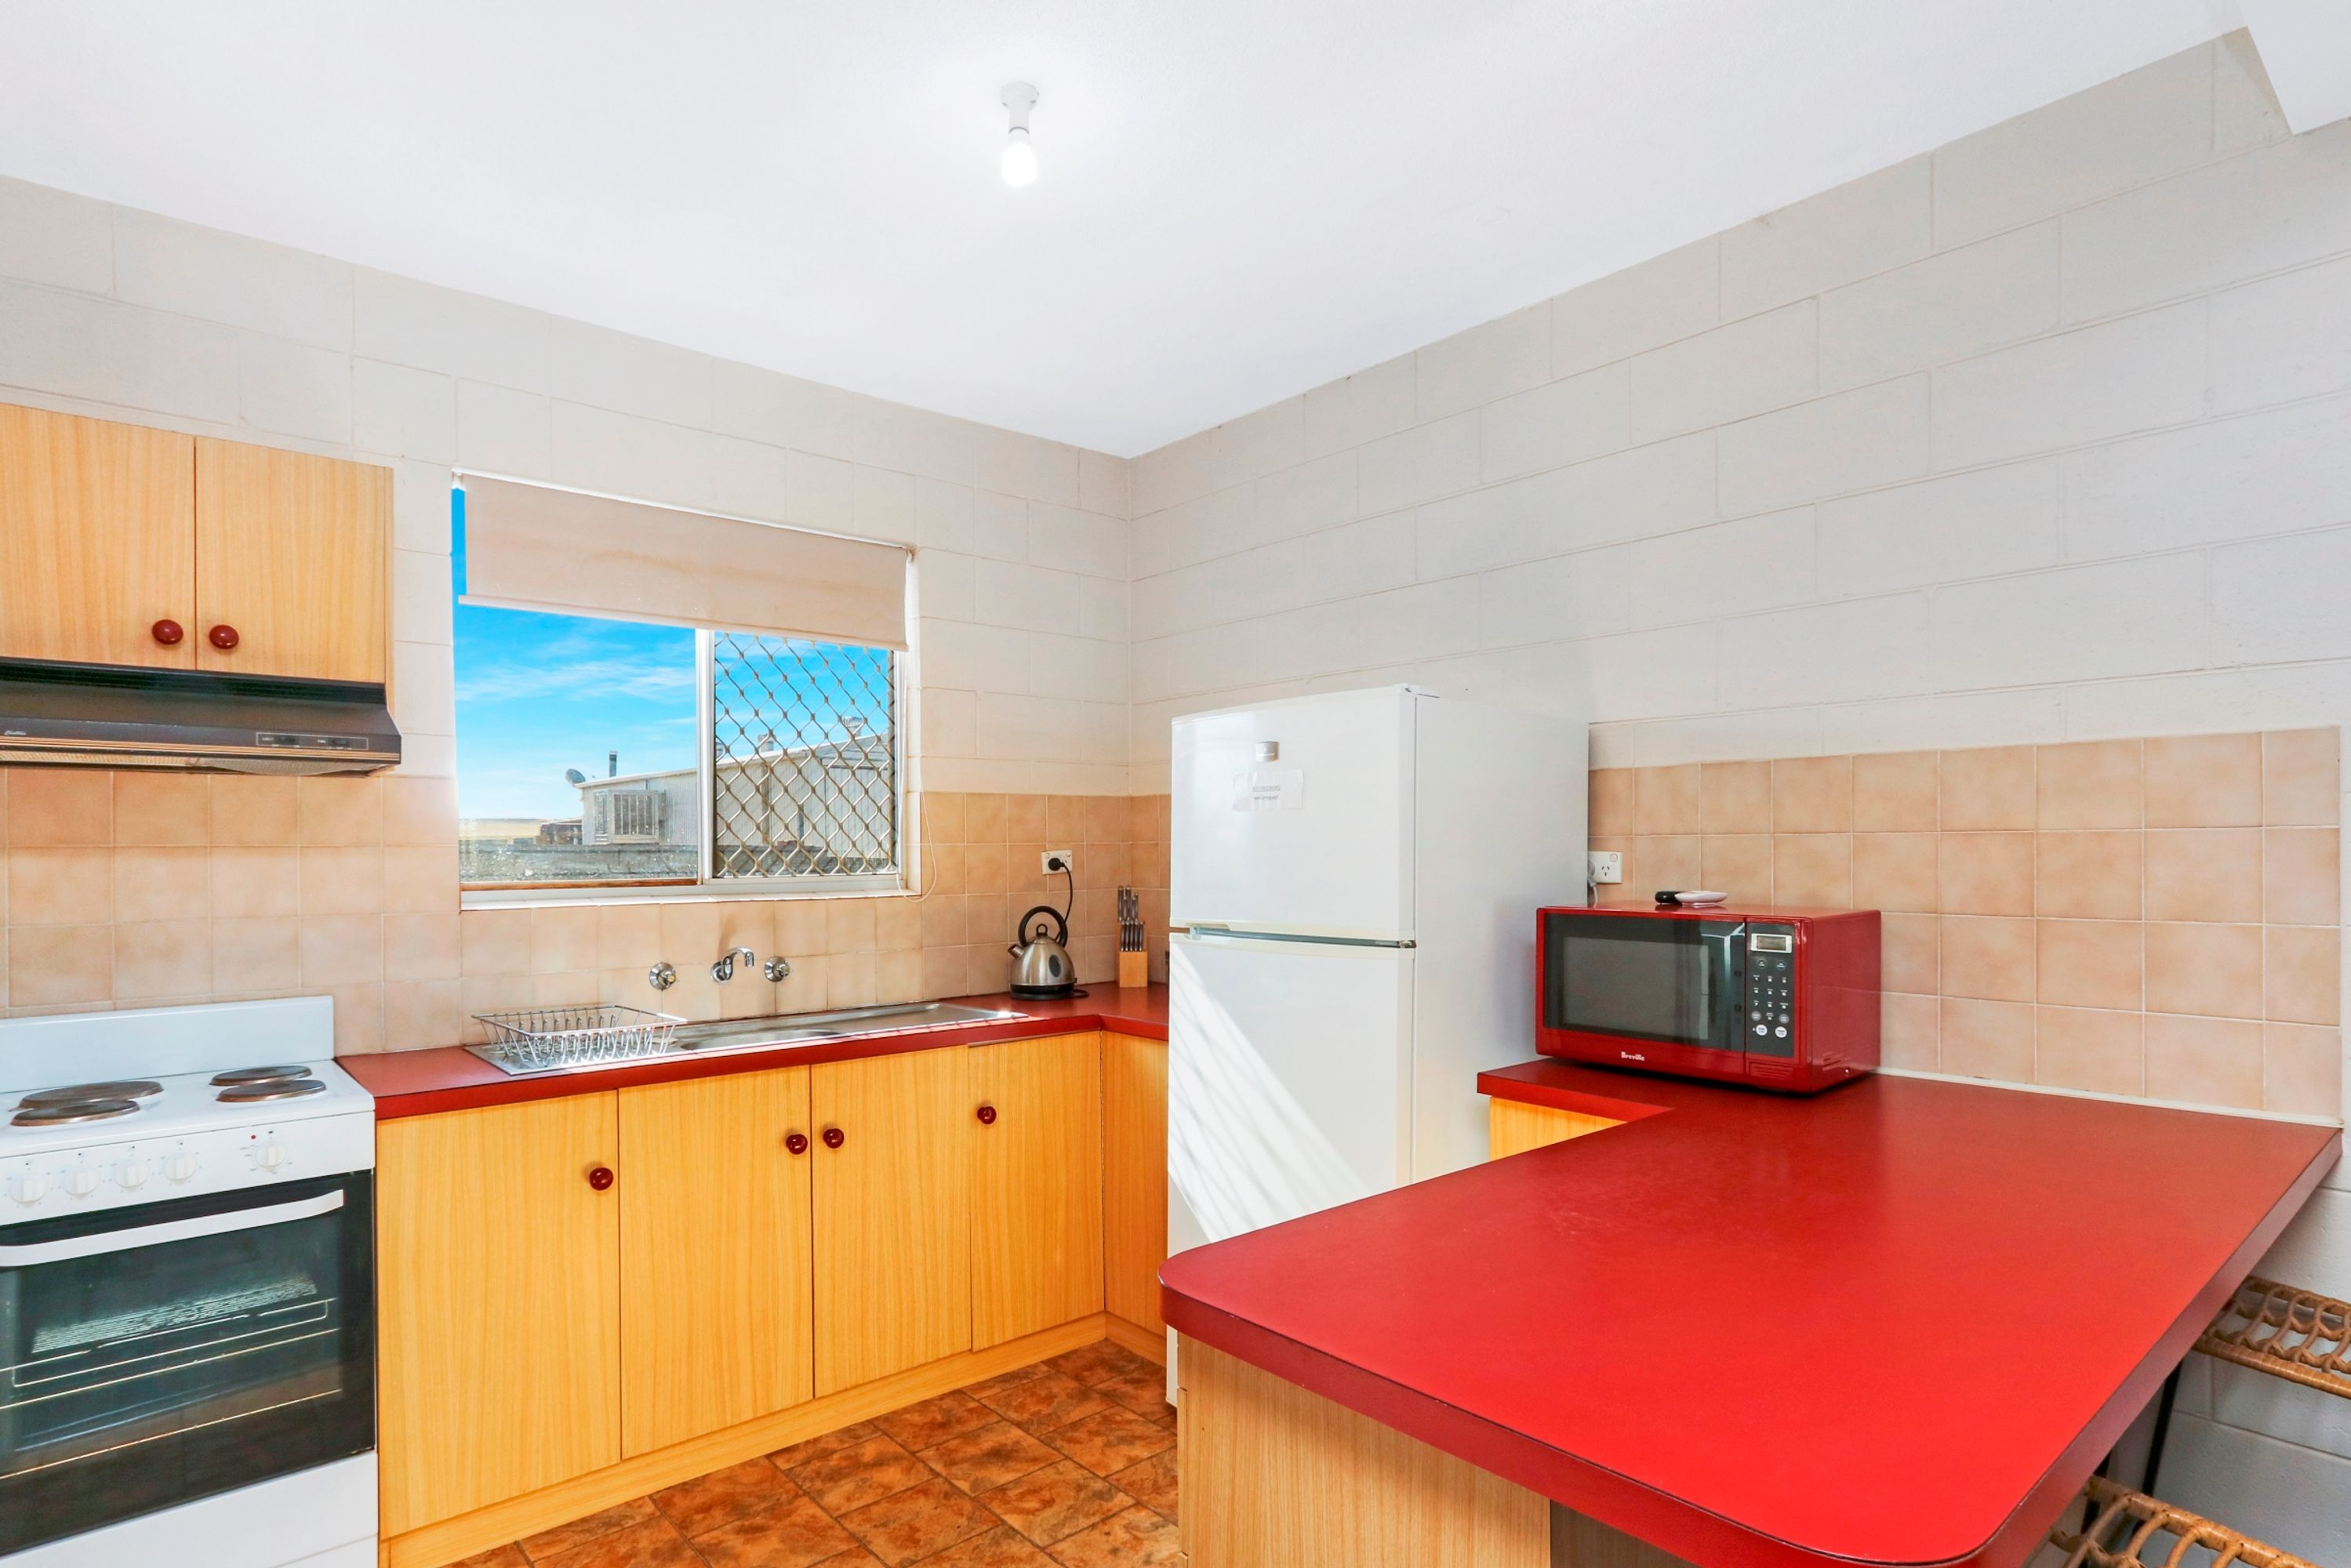 6/660 Blende Street, Broken Hill, NSW 2880